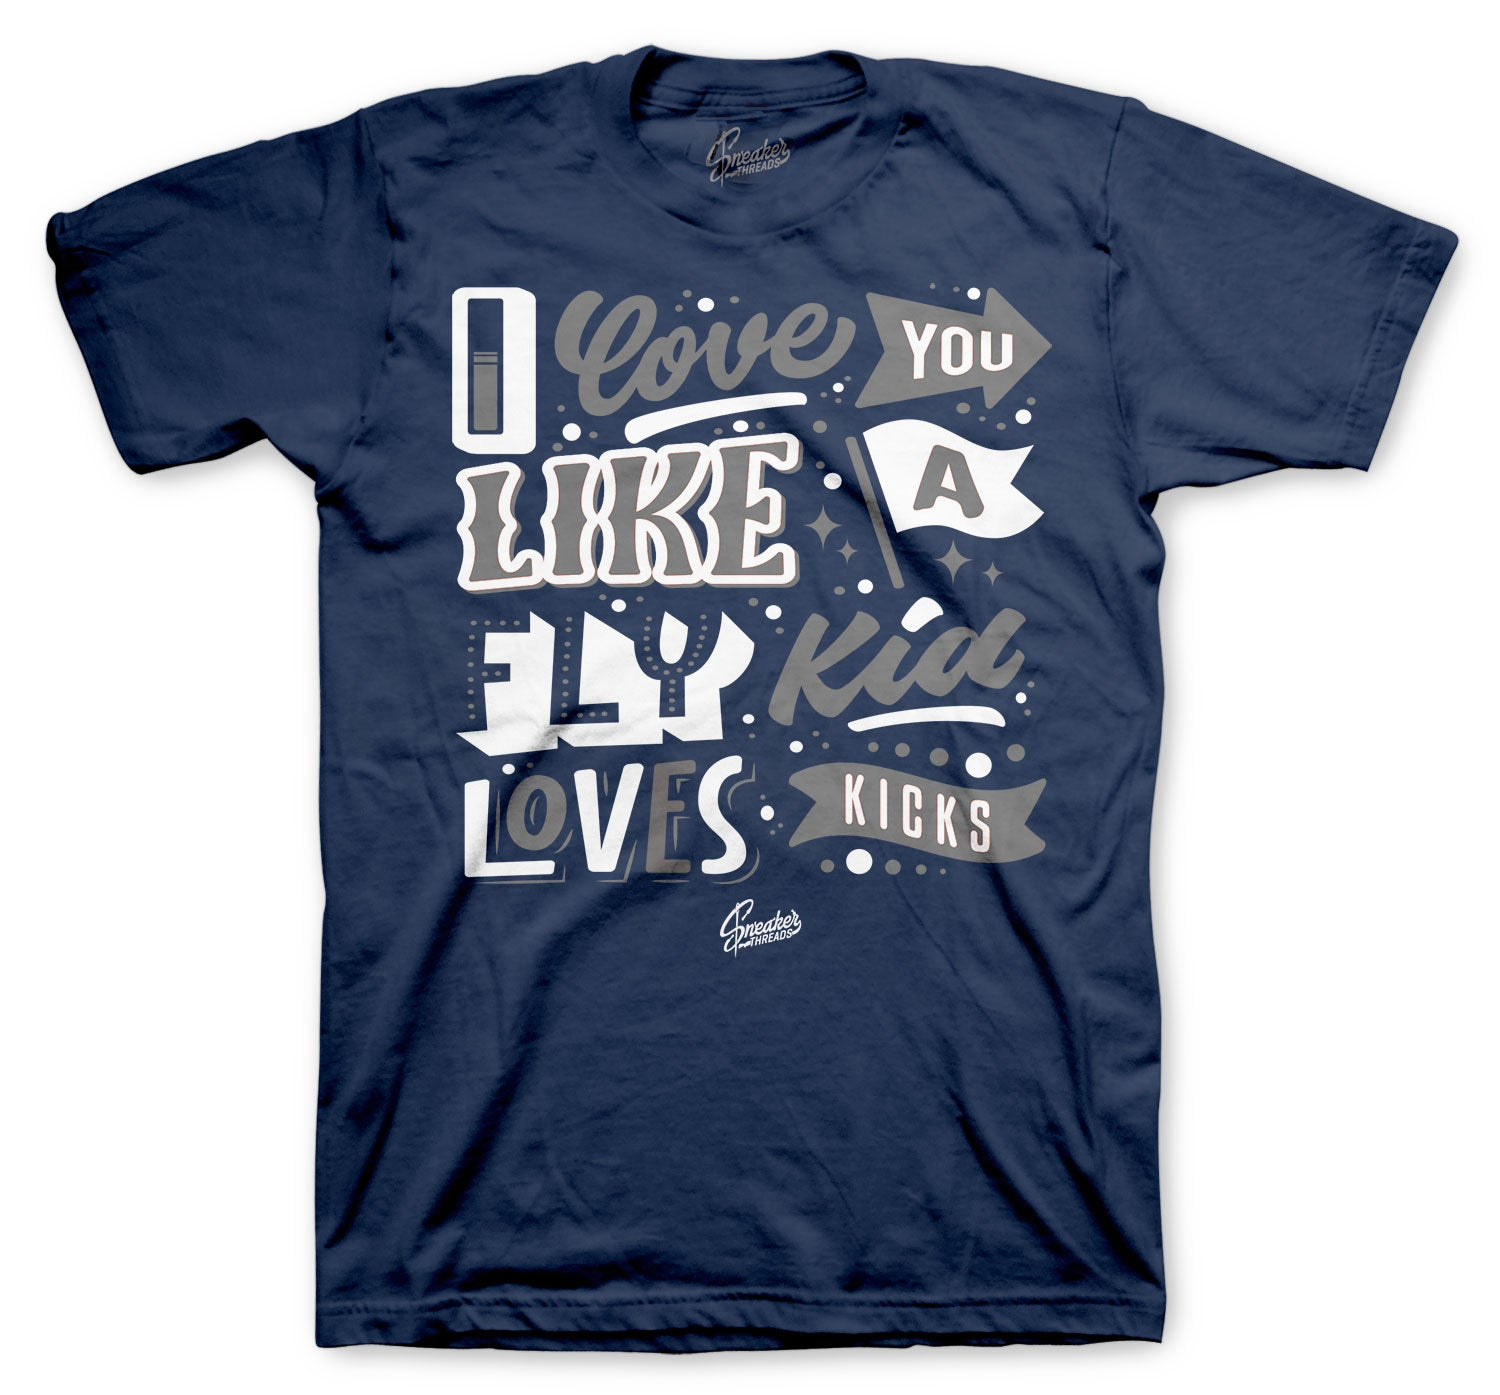 Jordan 13 Flint Shirt - Love Kicks - Navy